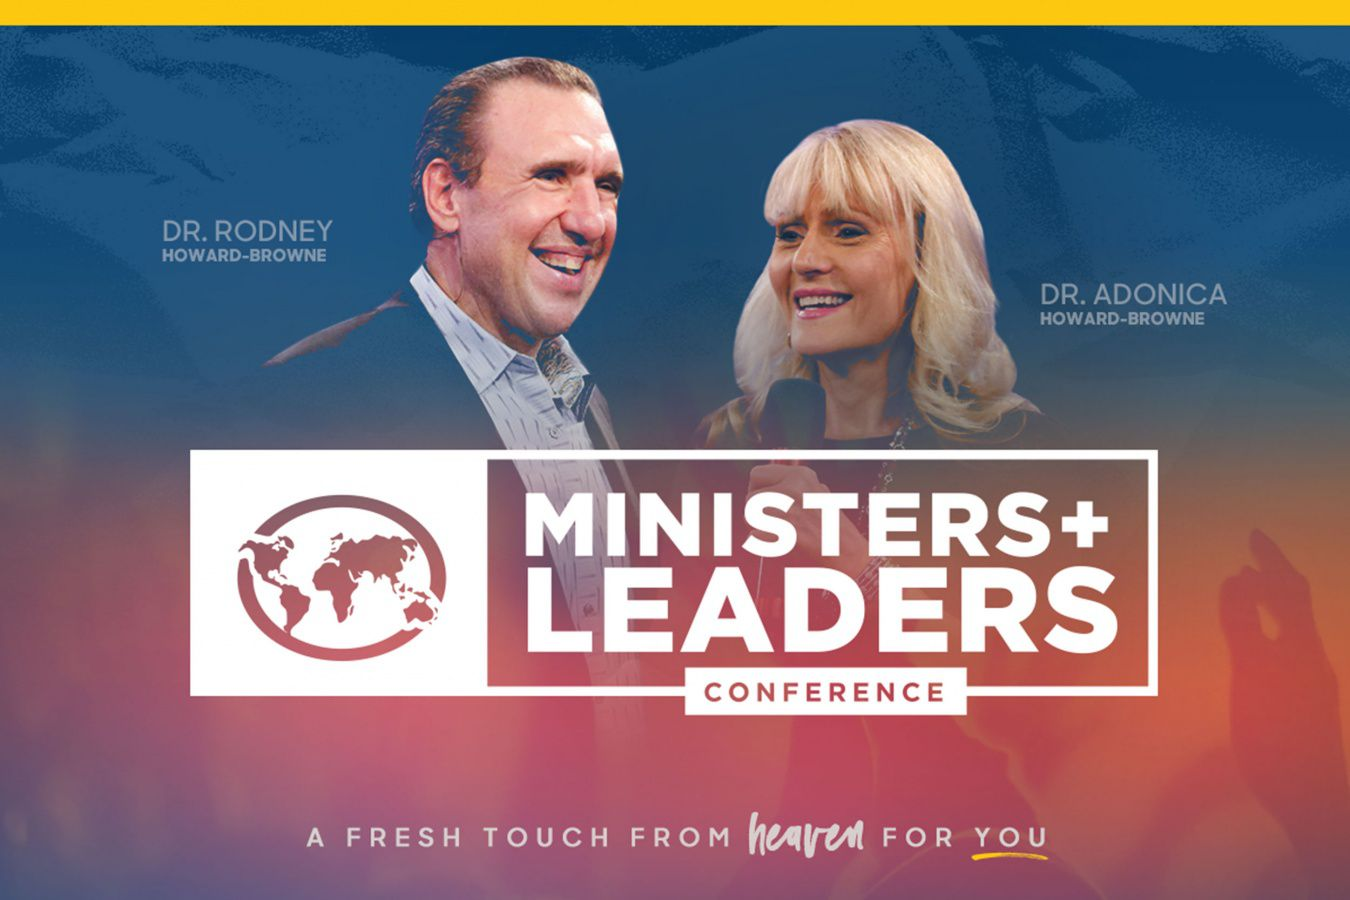 Ministers' and Leaders' Conference